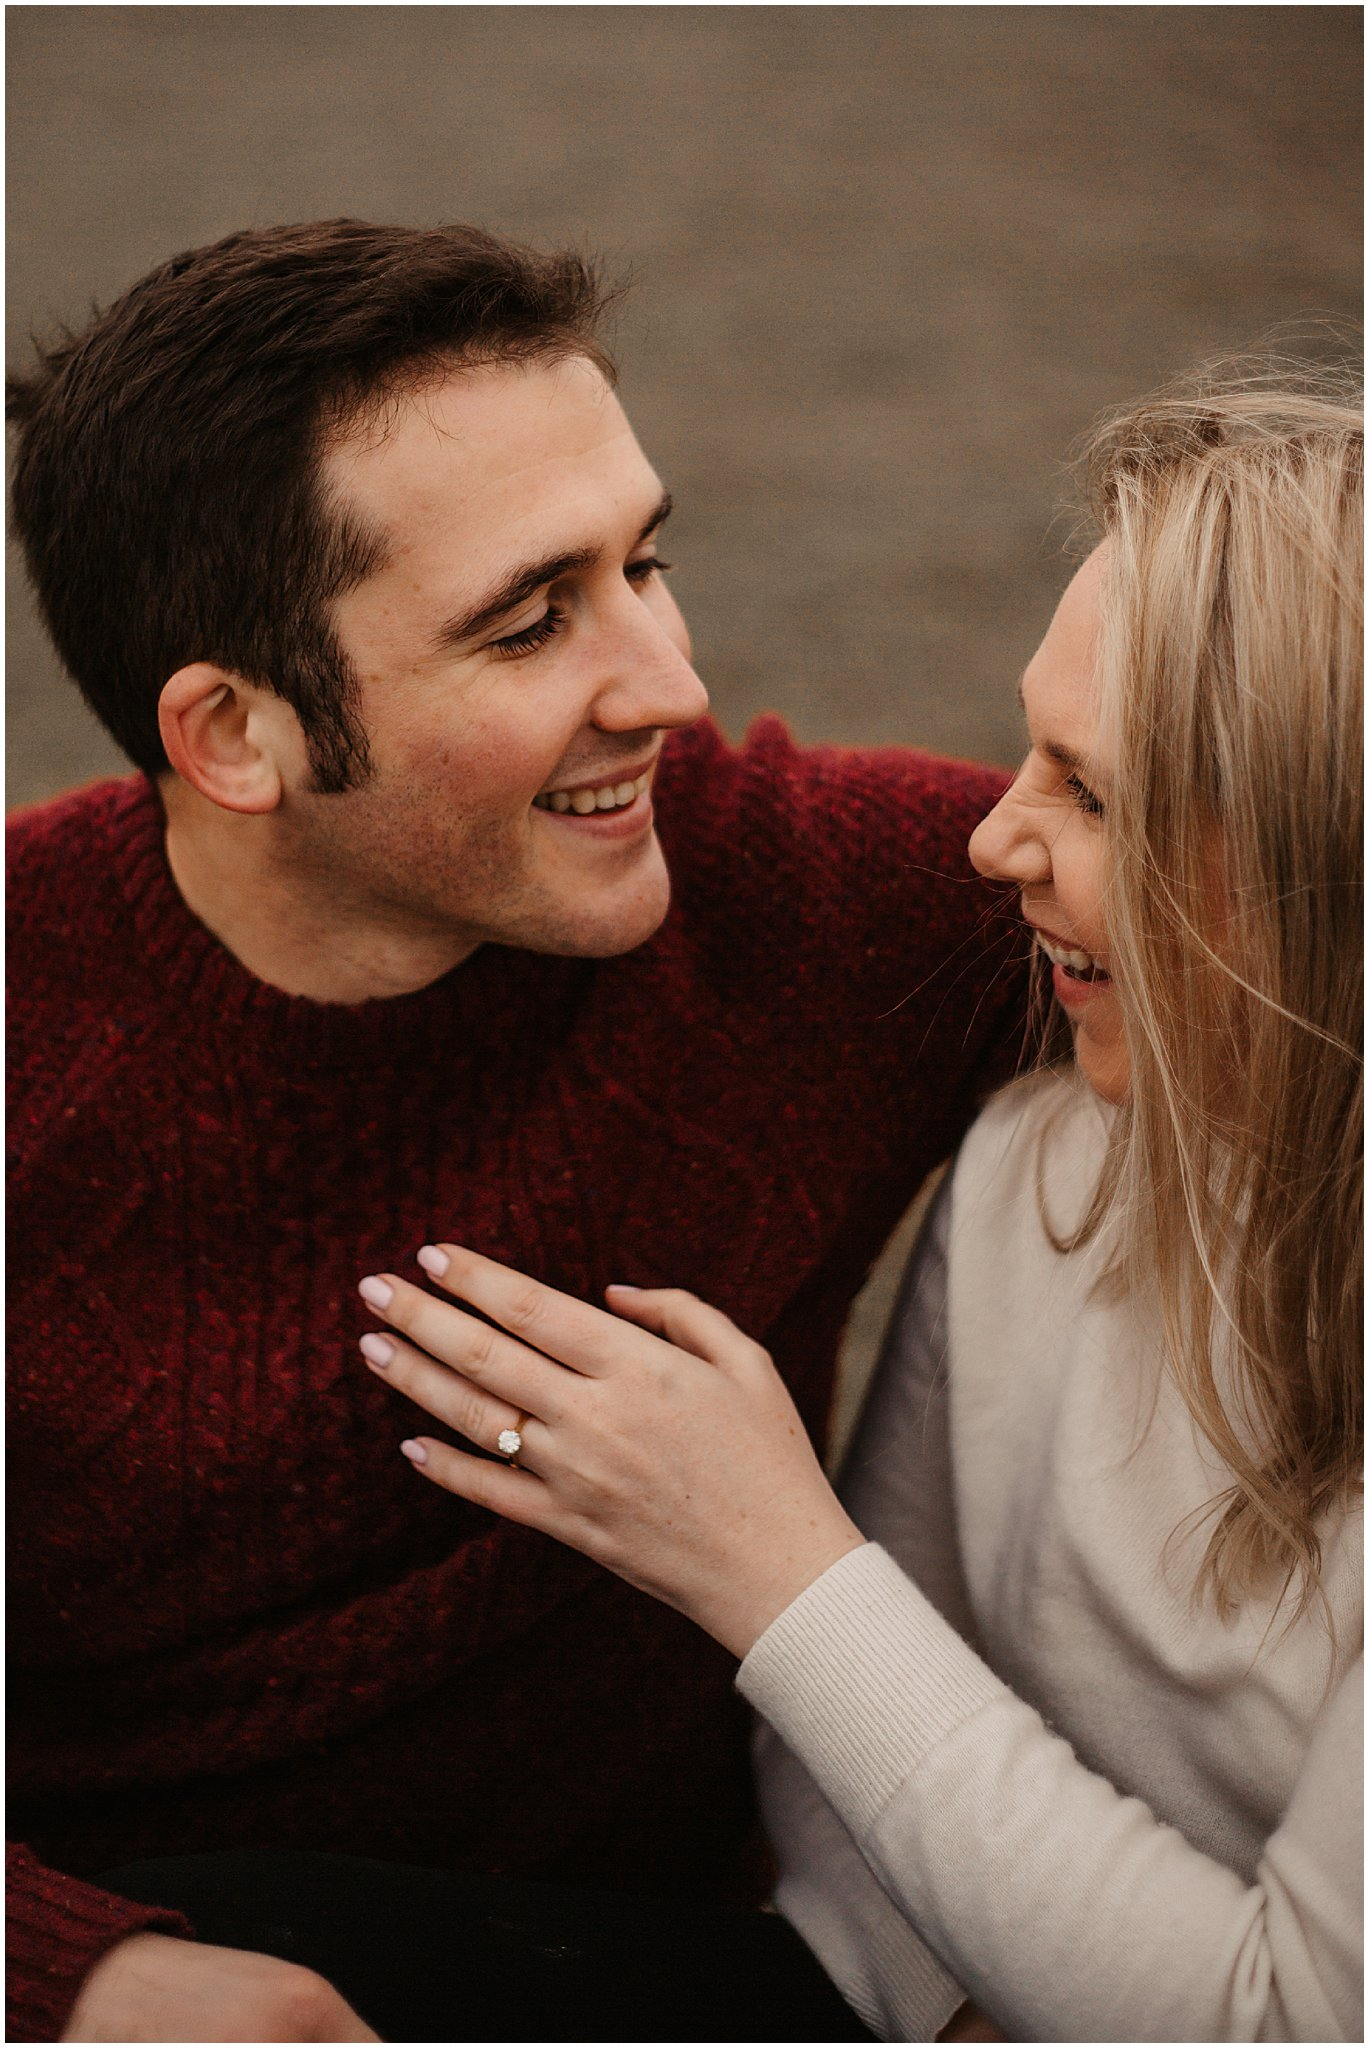 Mike & Charley_s Winter Engagement Shoot Wiltshire-119.jpg